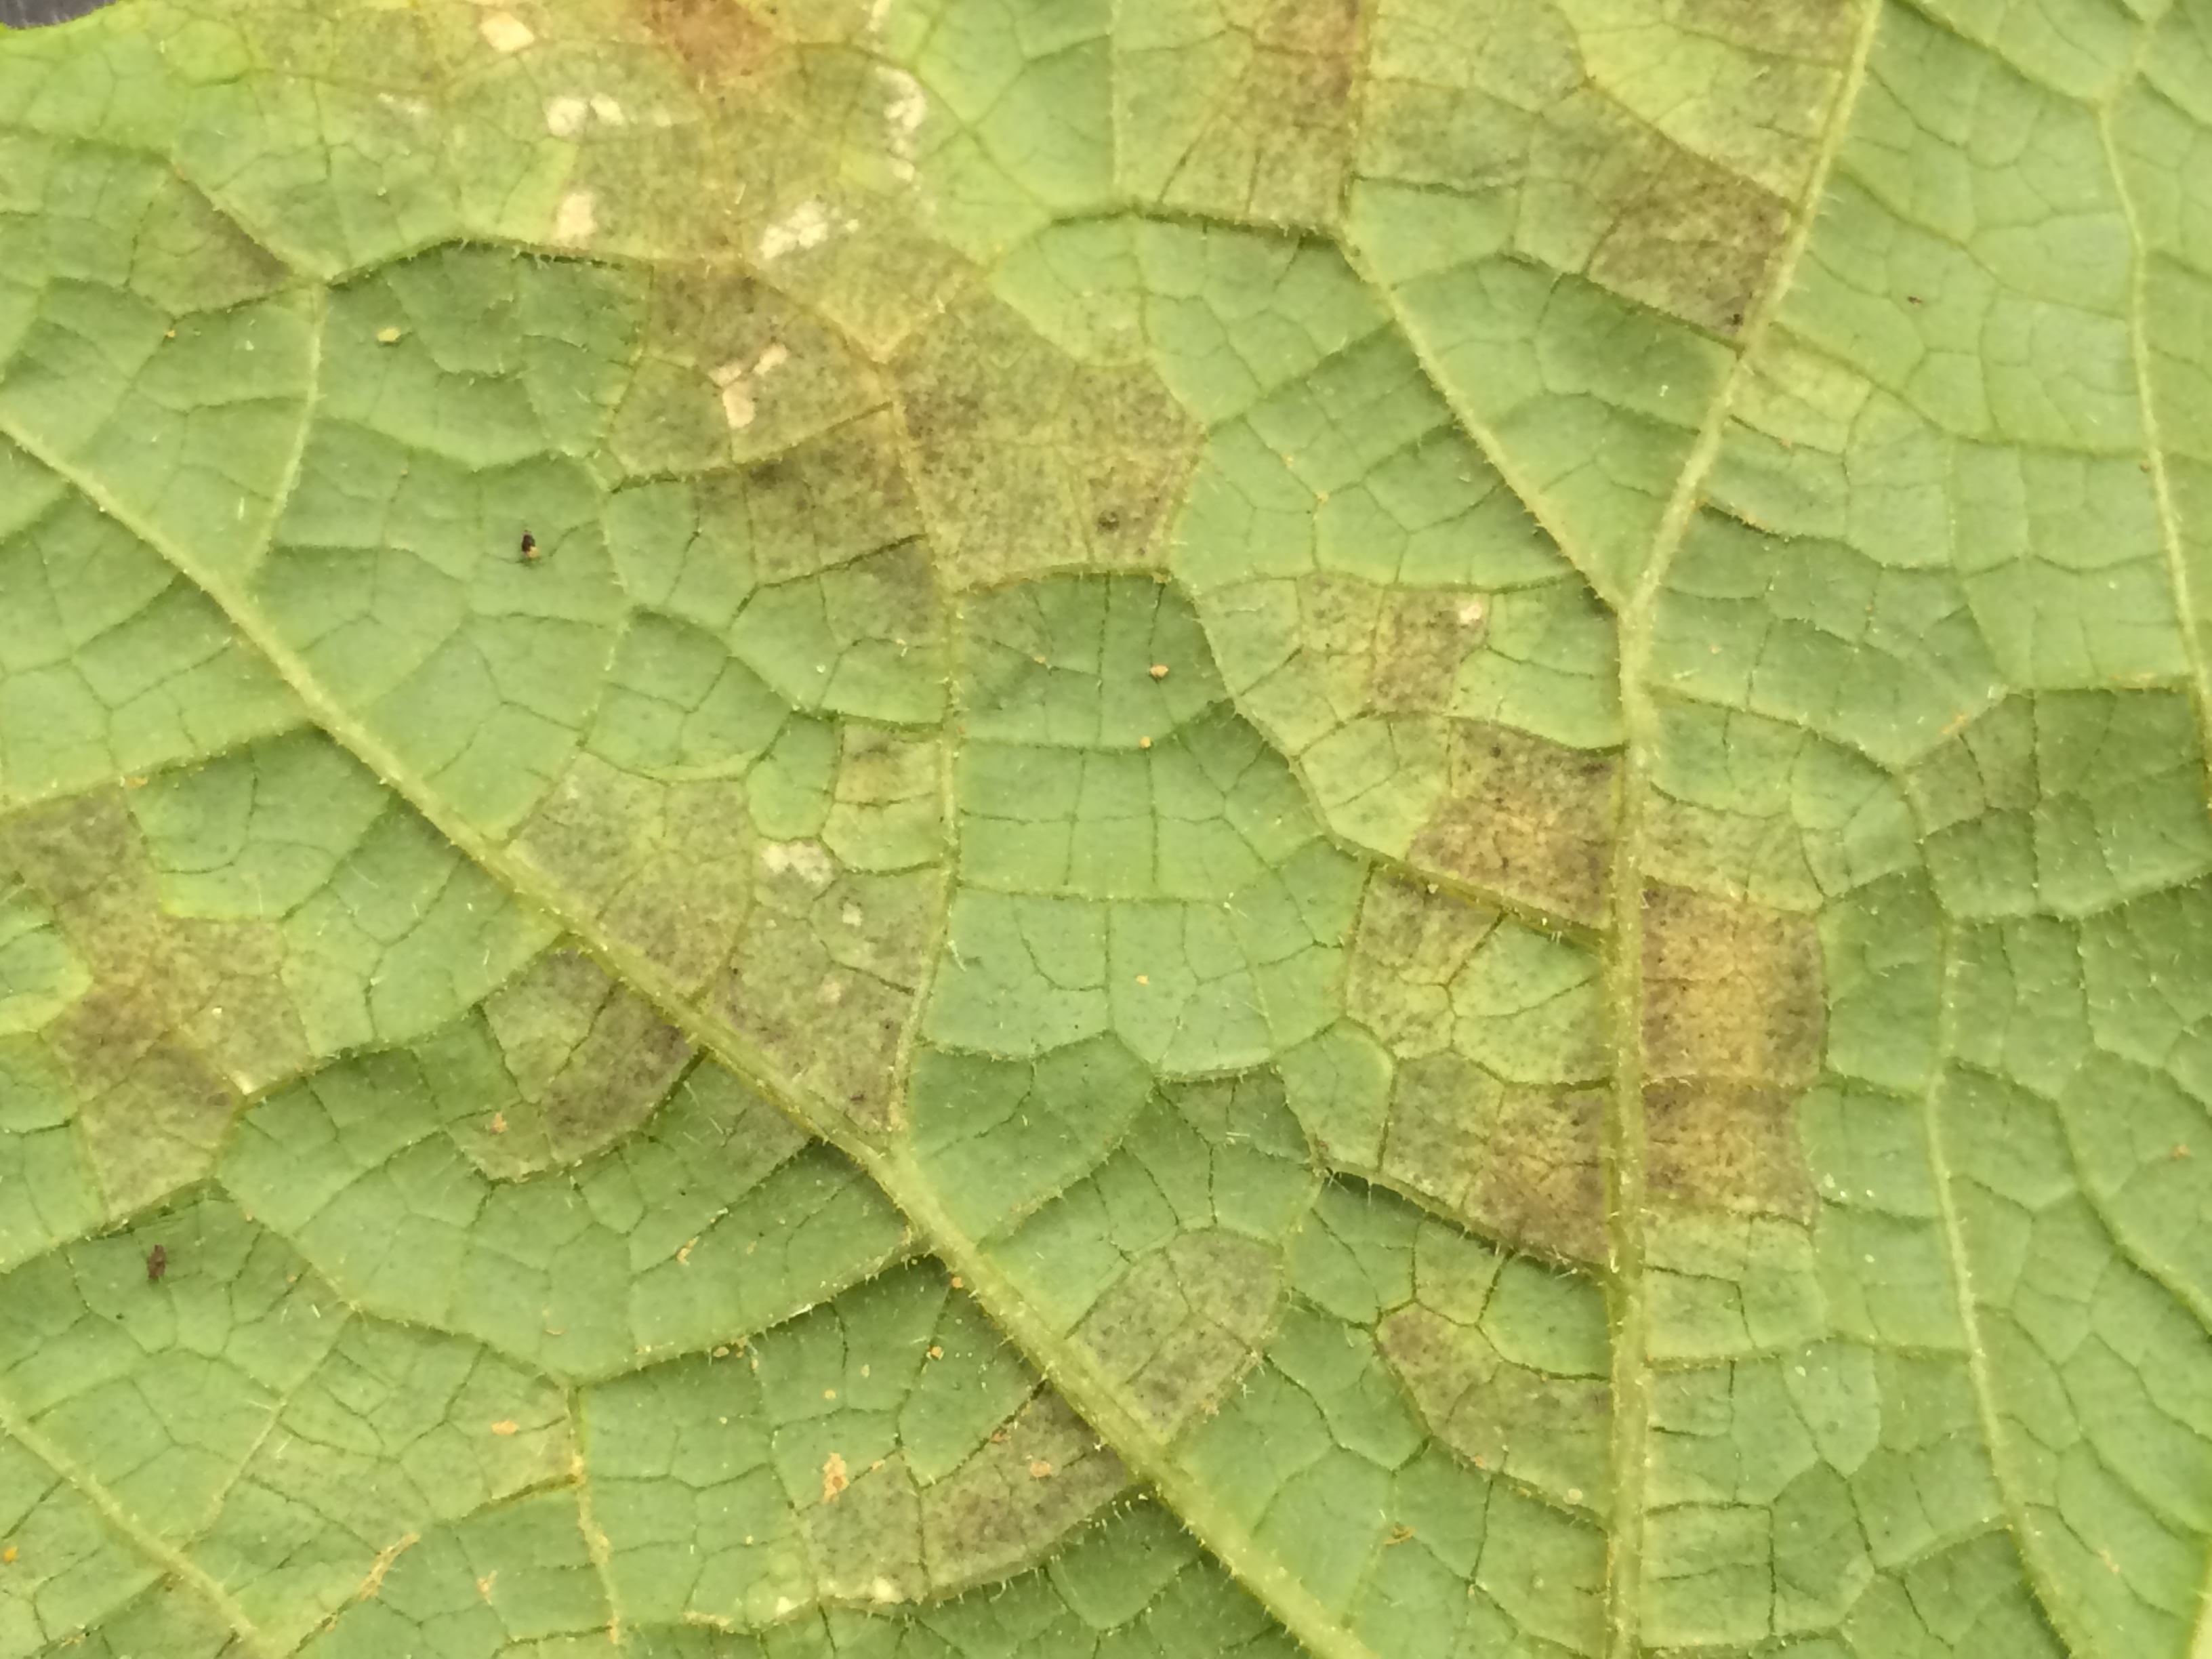 Pathogen growth on the lower leaf surface of a cucumber leaf with downy mildew.